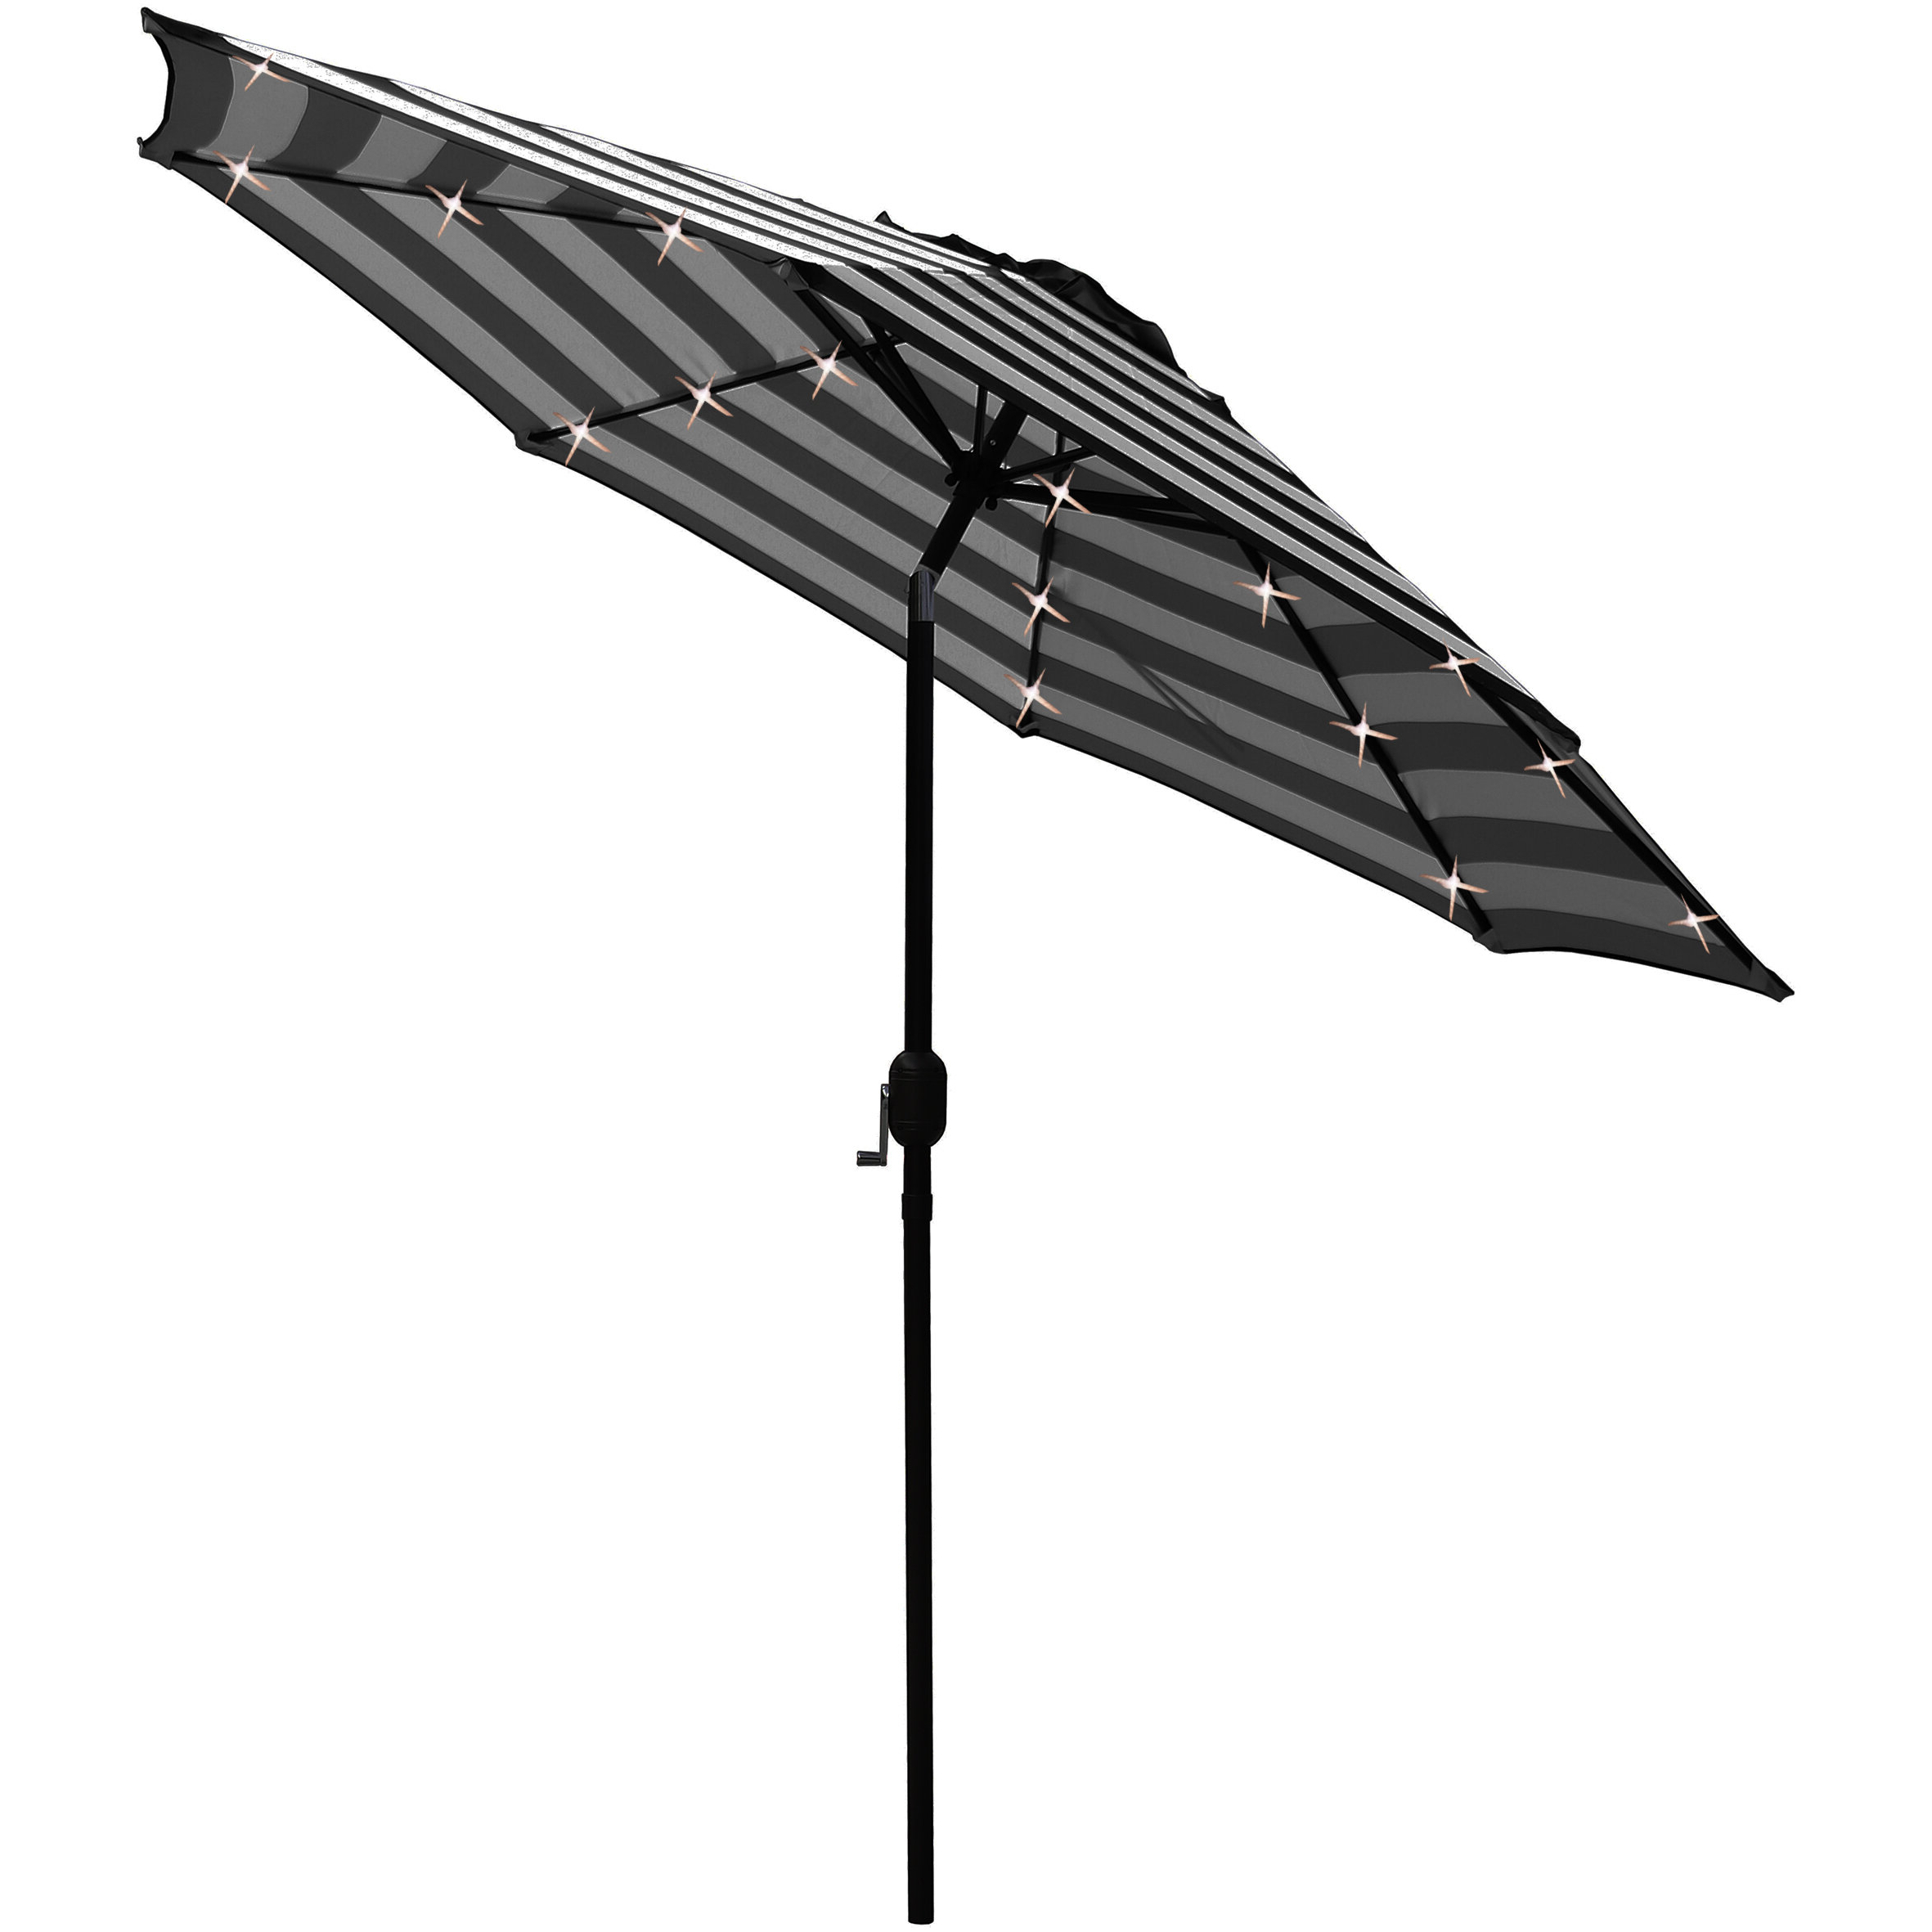 Solar Led Lighted Patio 9' Black Market Umbrella Regarding 2019 Venice Lighted Umbrellas (View 8 of 20)